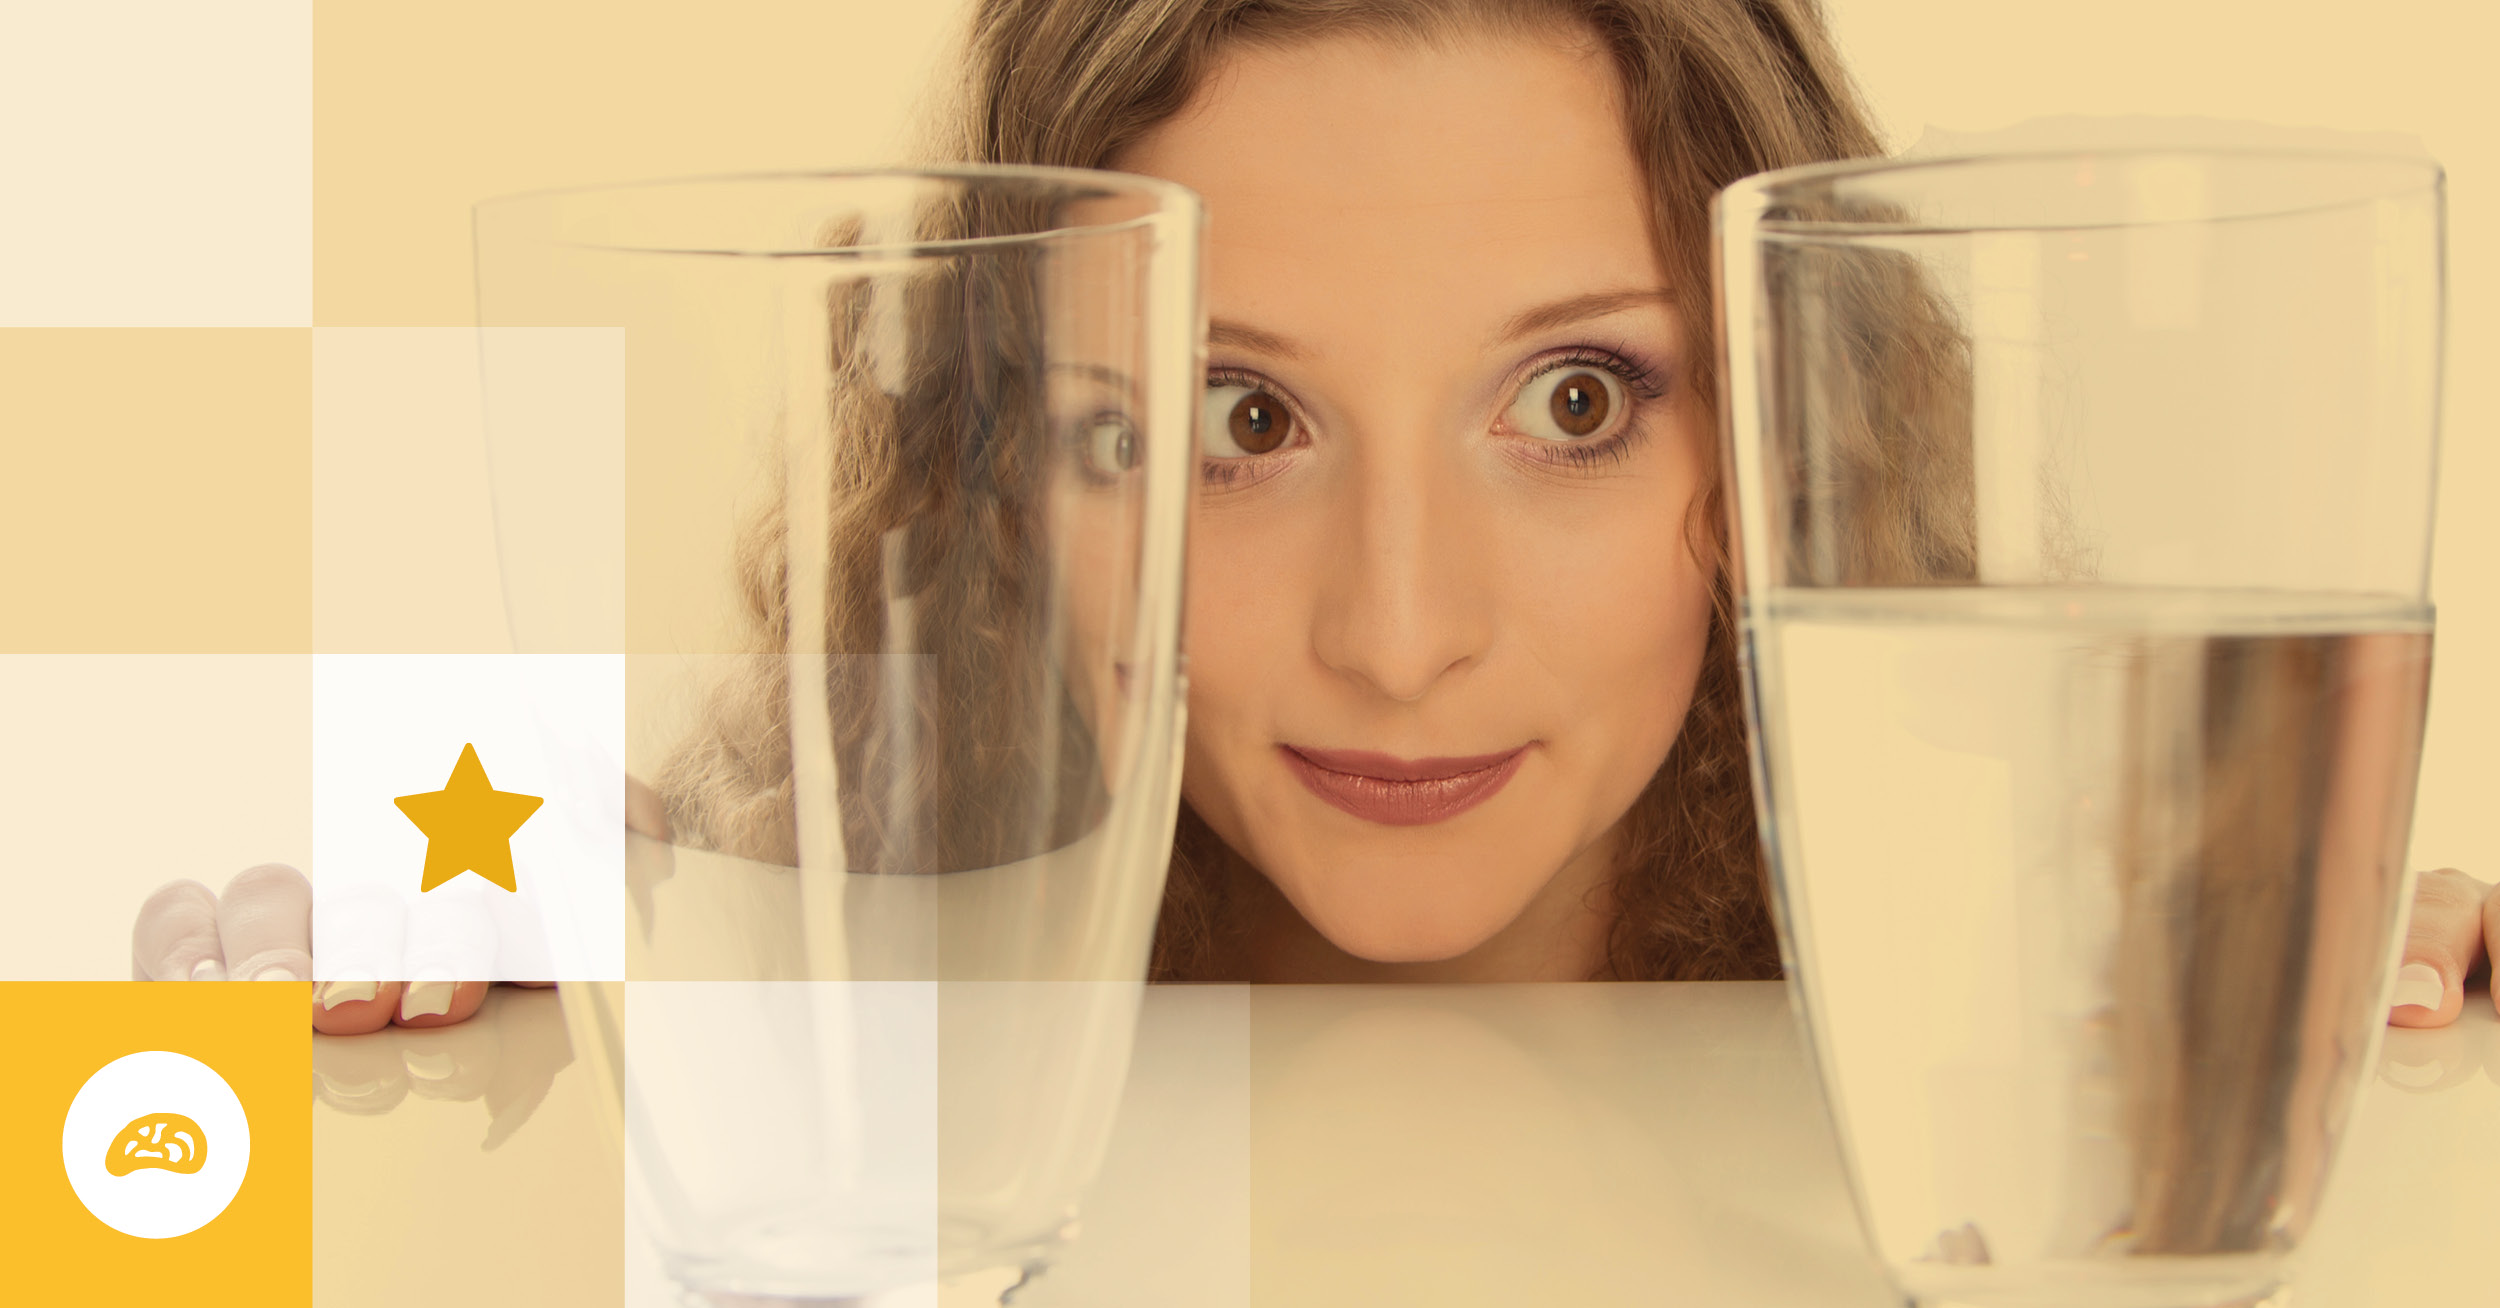 Keeping Your Glass At Least Half Full